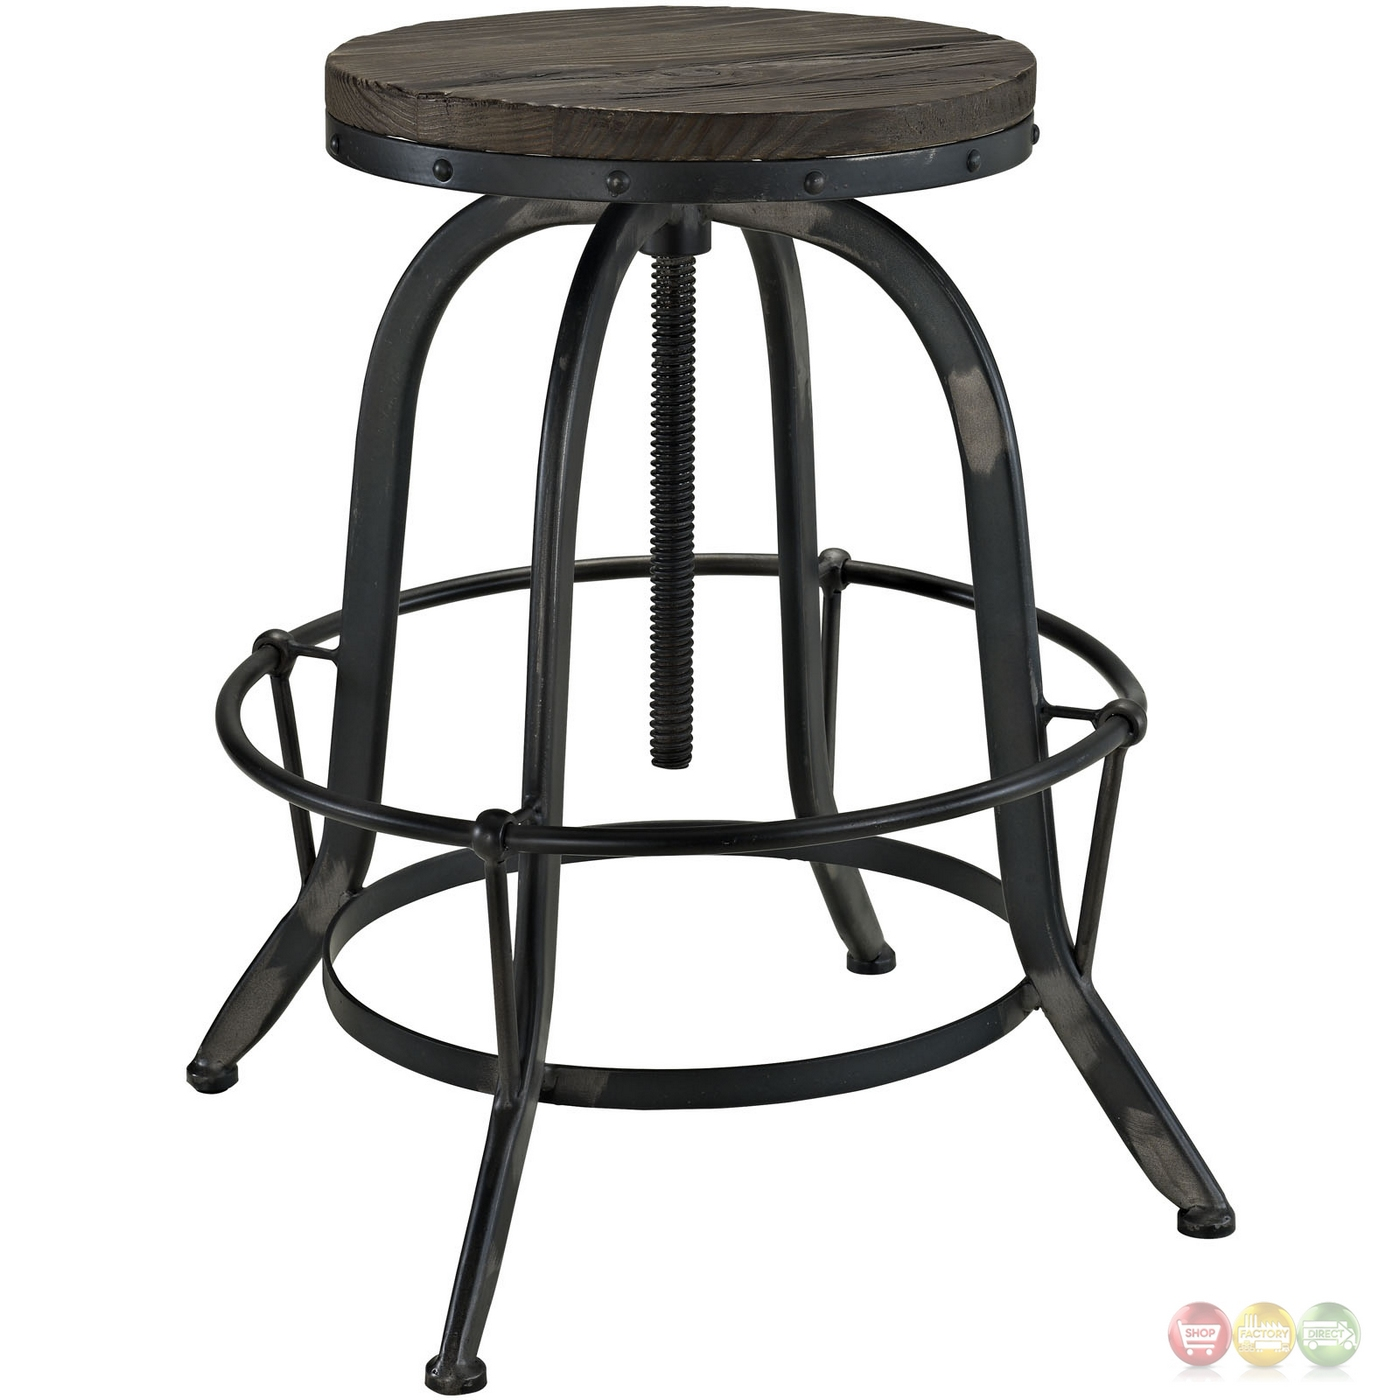 Set Of 4 Collect Industrial Bar Stool Wwood Seat amp Cast  : set of 4 collect industrial bar stool w wood seat cast iron frame black 7 from shopfactorydirect.com size 1400 x 1400 jpeg 343kB